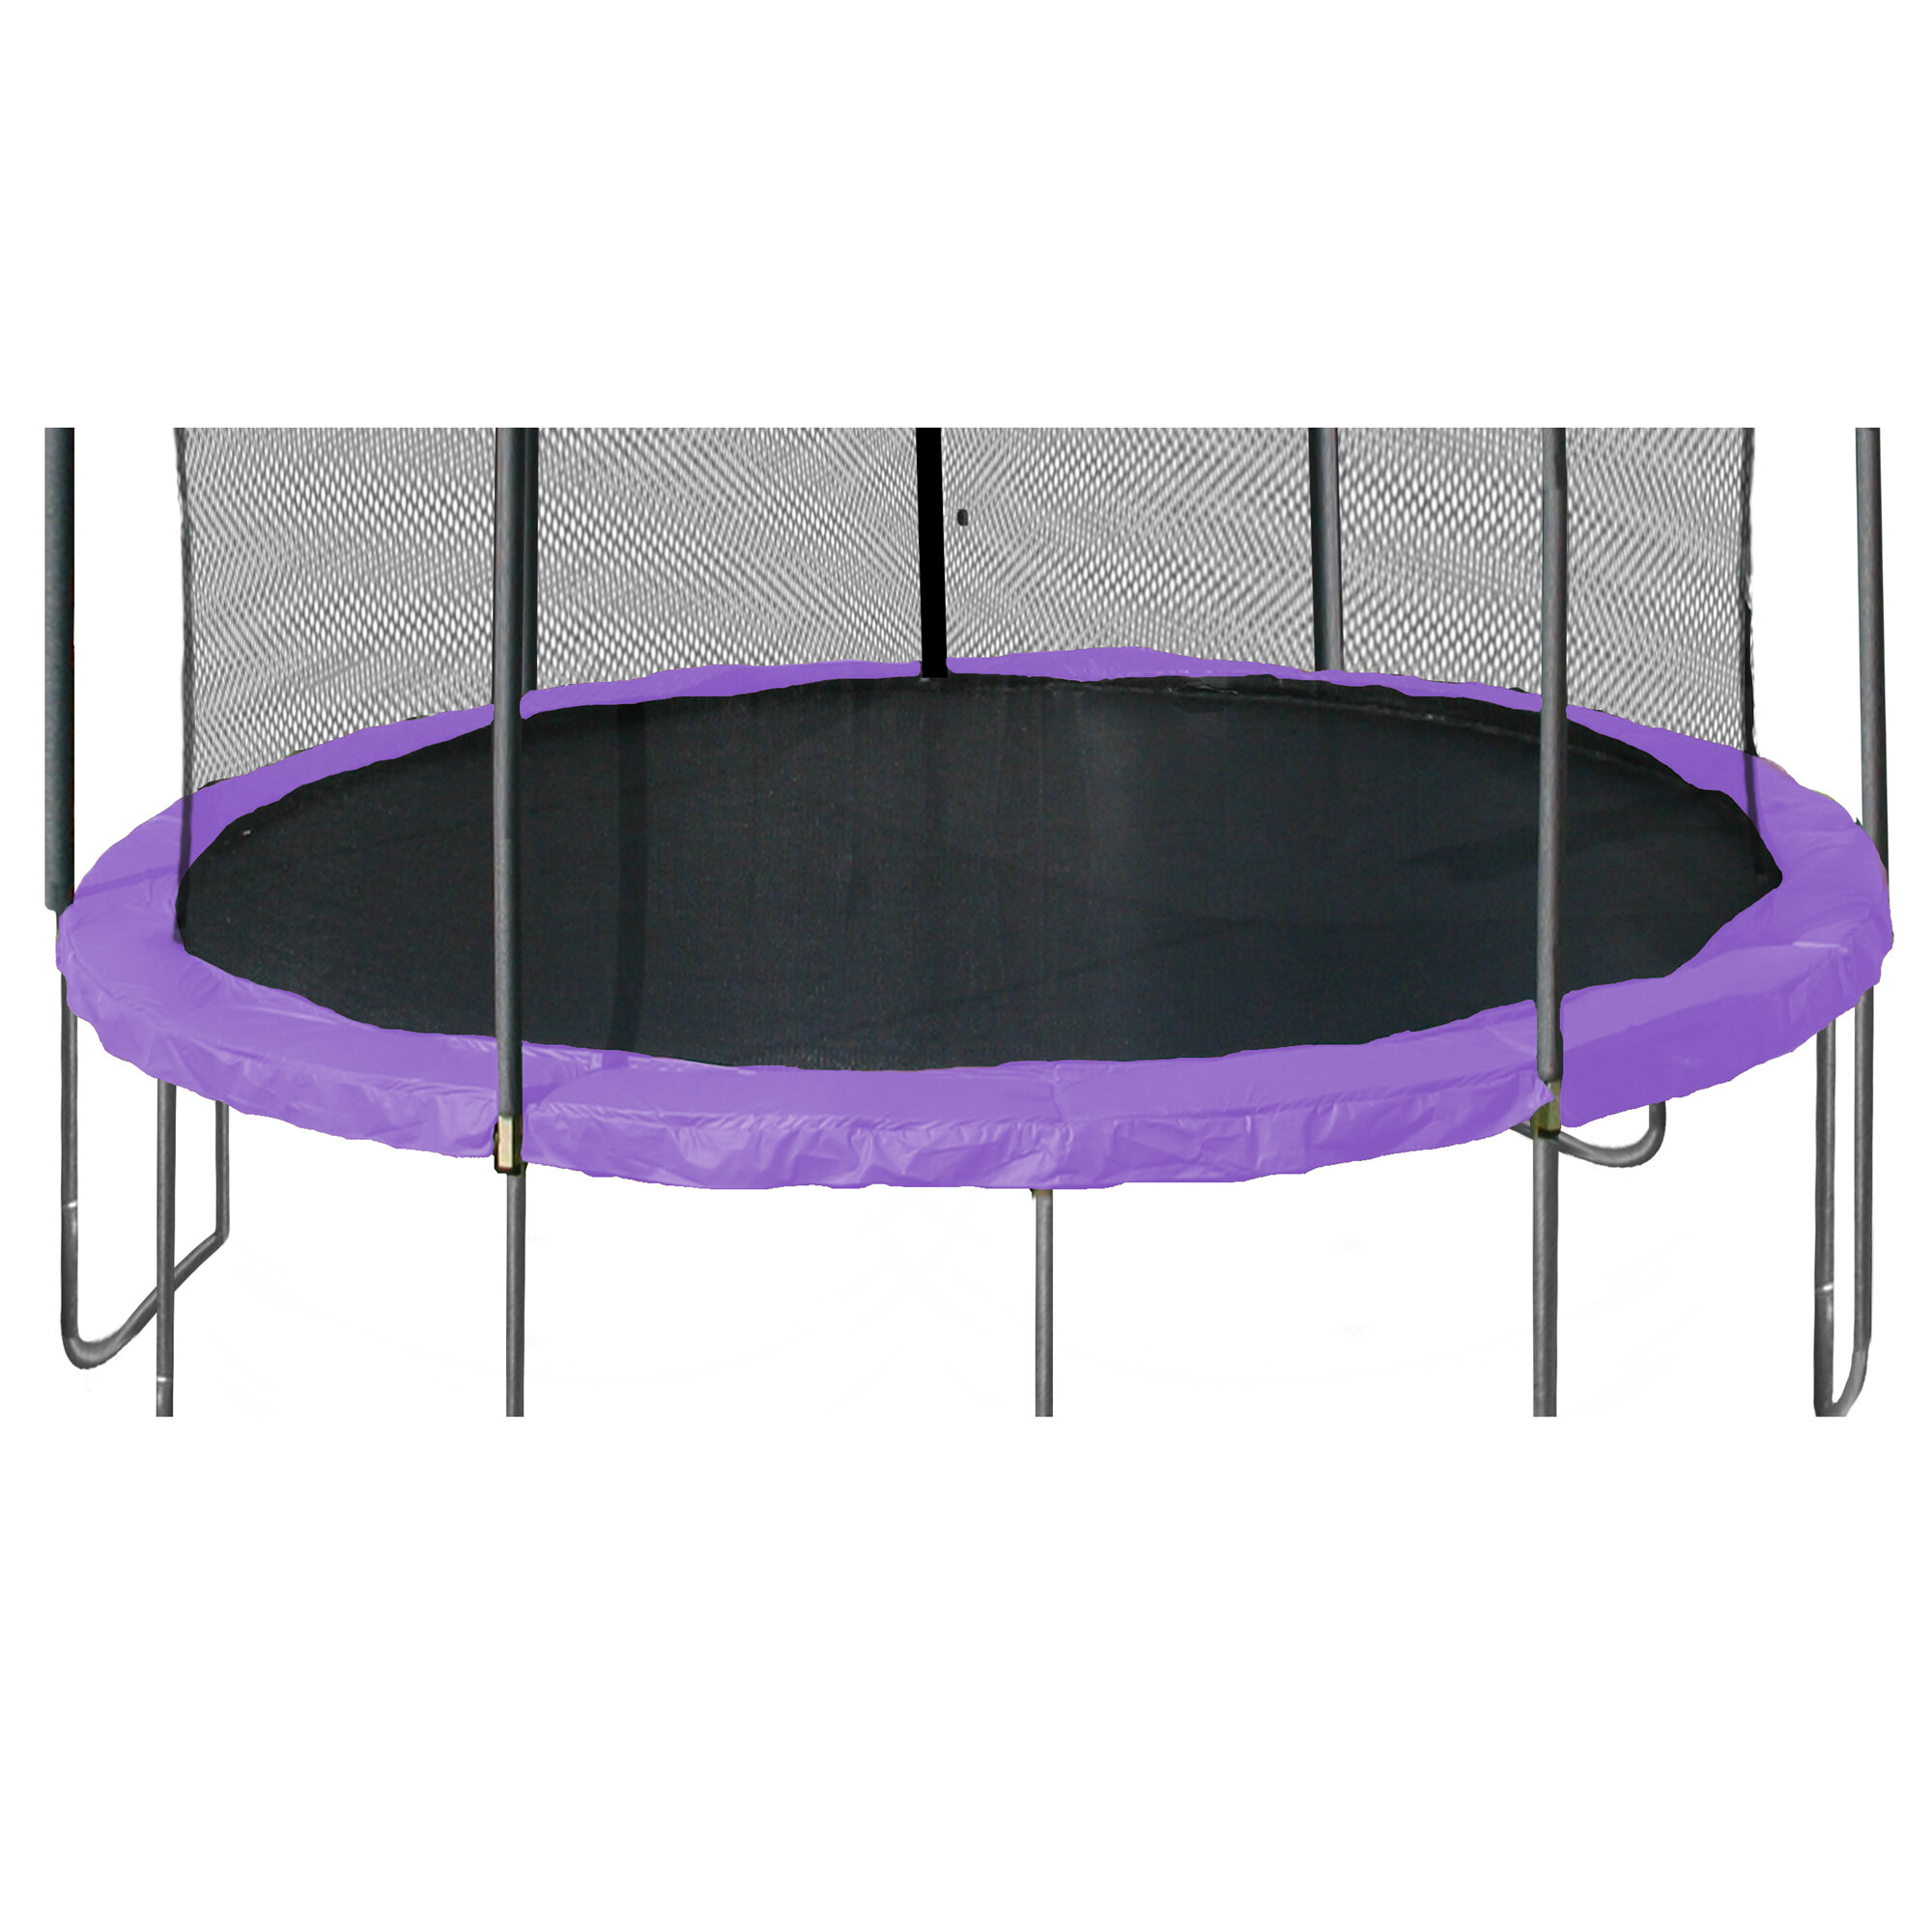 Skywalker Trampolines Oval Spring Pad Purple | eBay